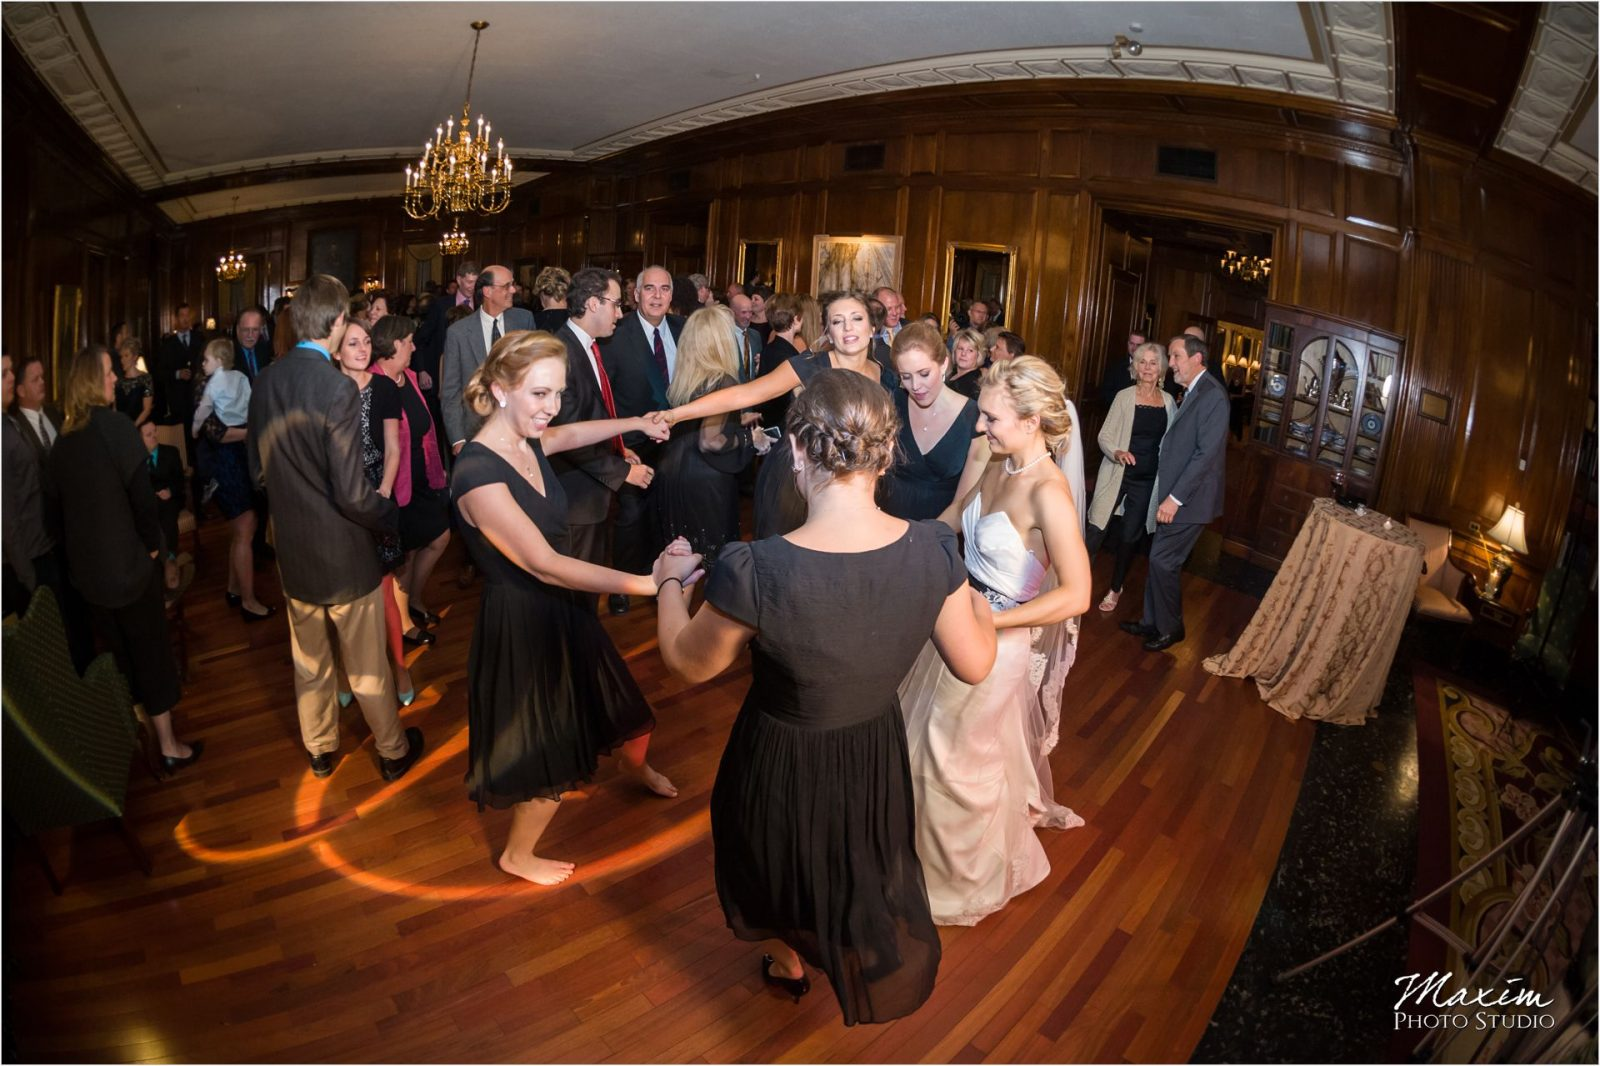 Queen City Cincinnati Wedding Reception dance